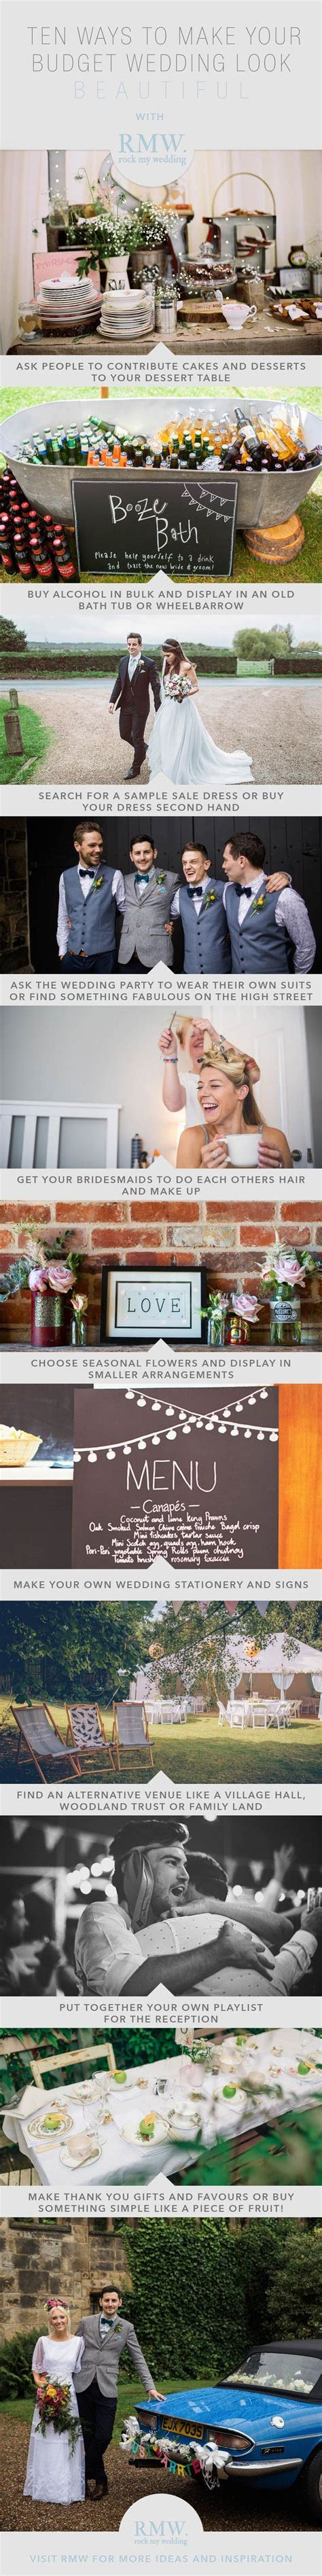 25  best ideas about Budget wedding on Pinterest   Wedding